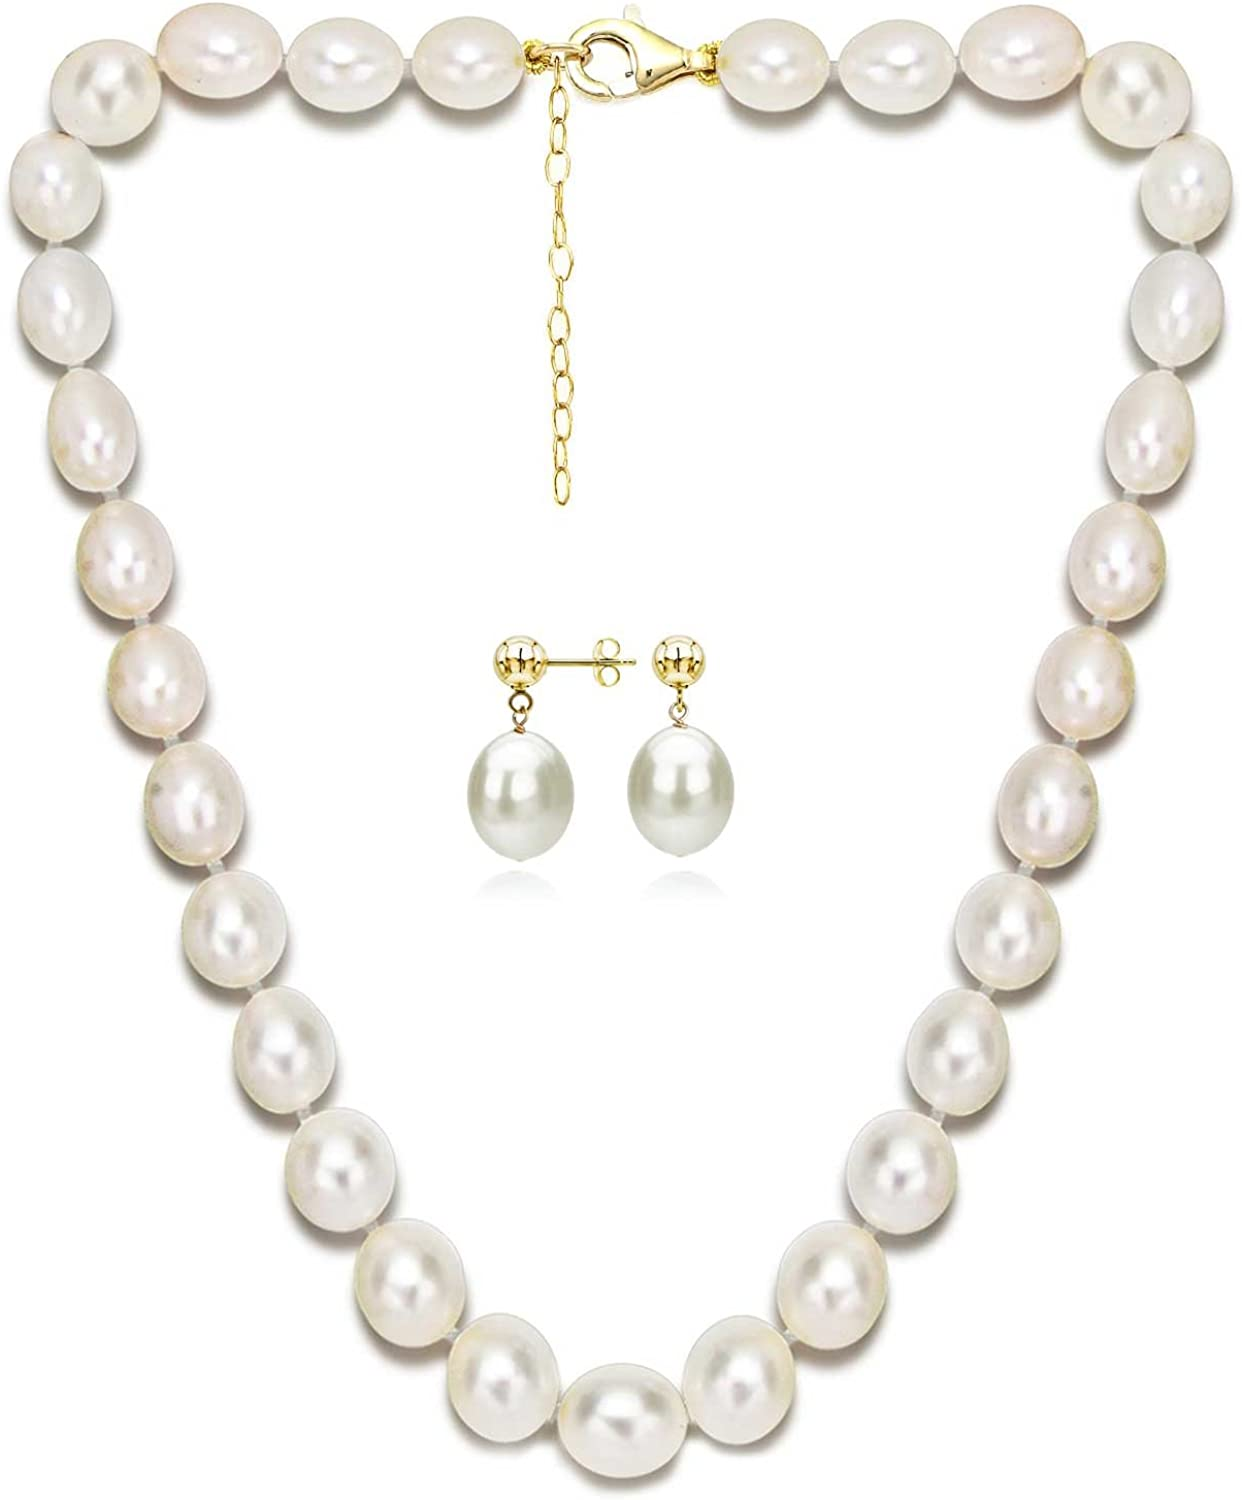 18k Yellow Gold Plated Silver 10-10.5mm White Freshwater Cultured Pearl Necklace Set 2 Extender 18